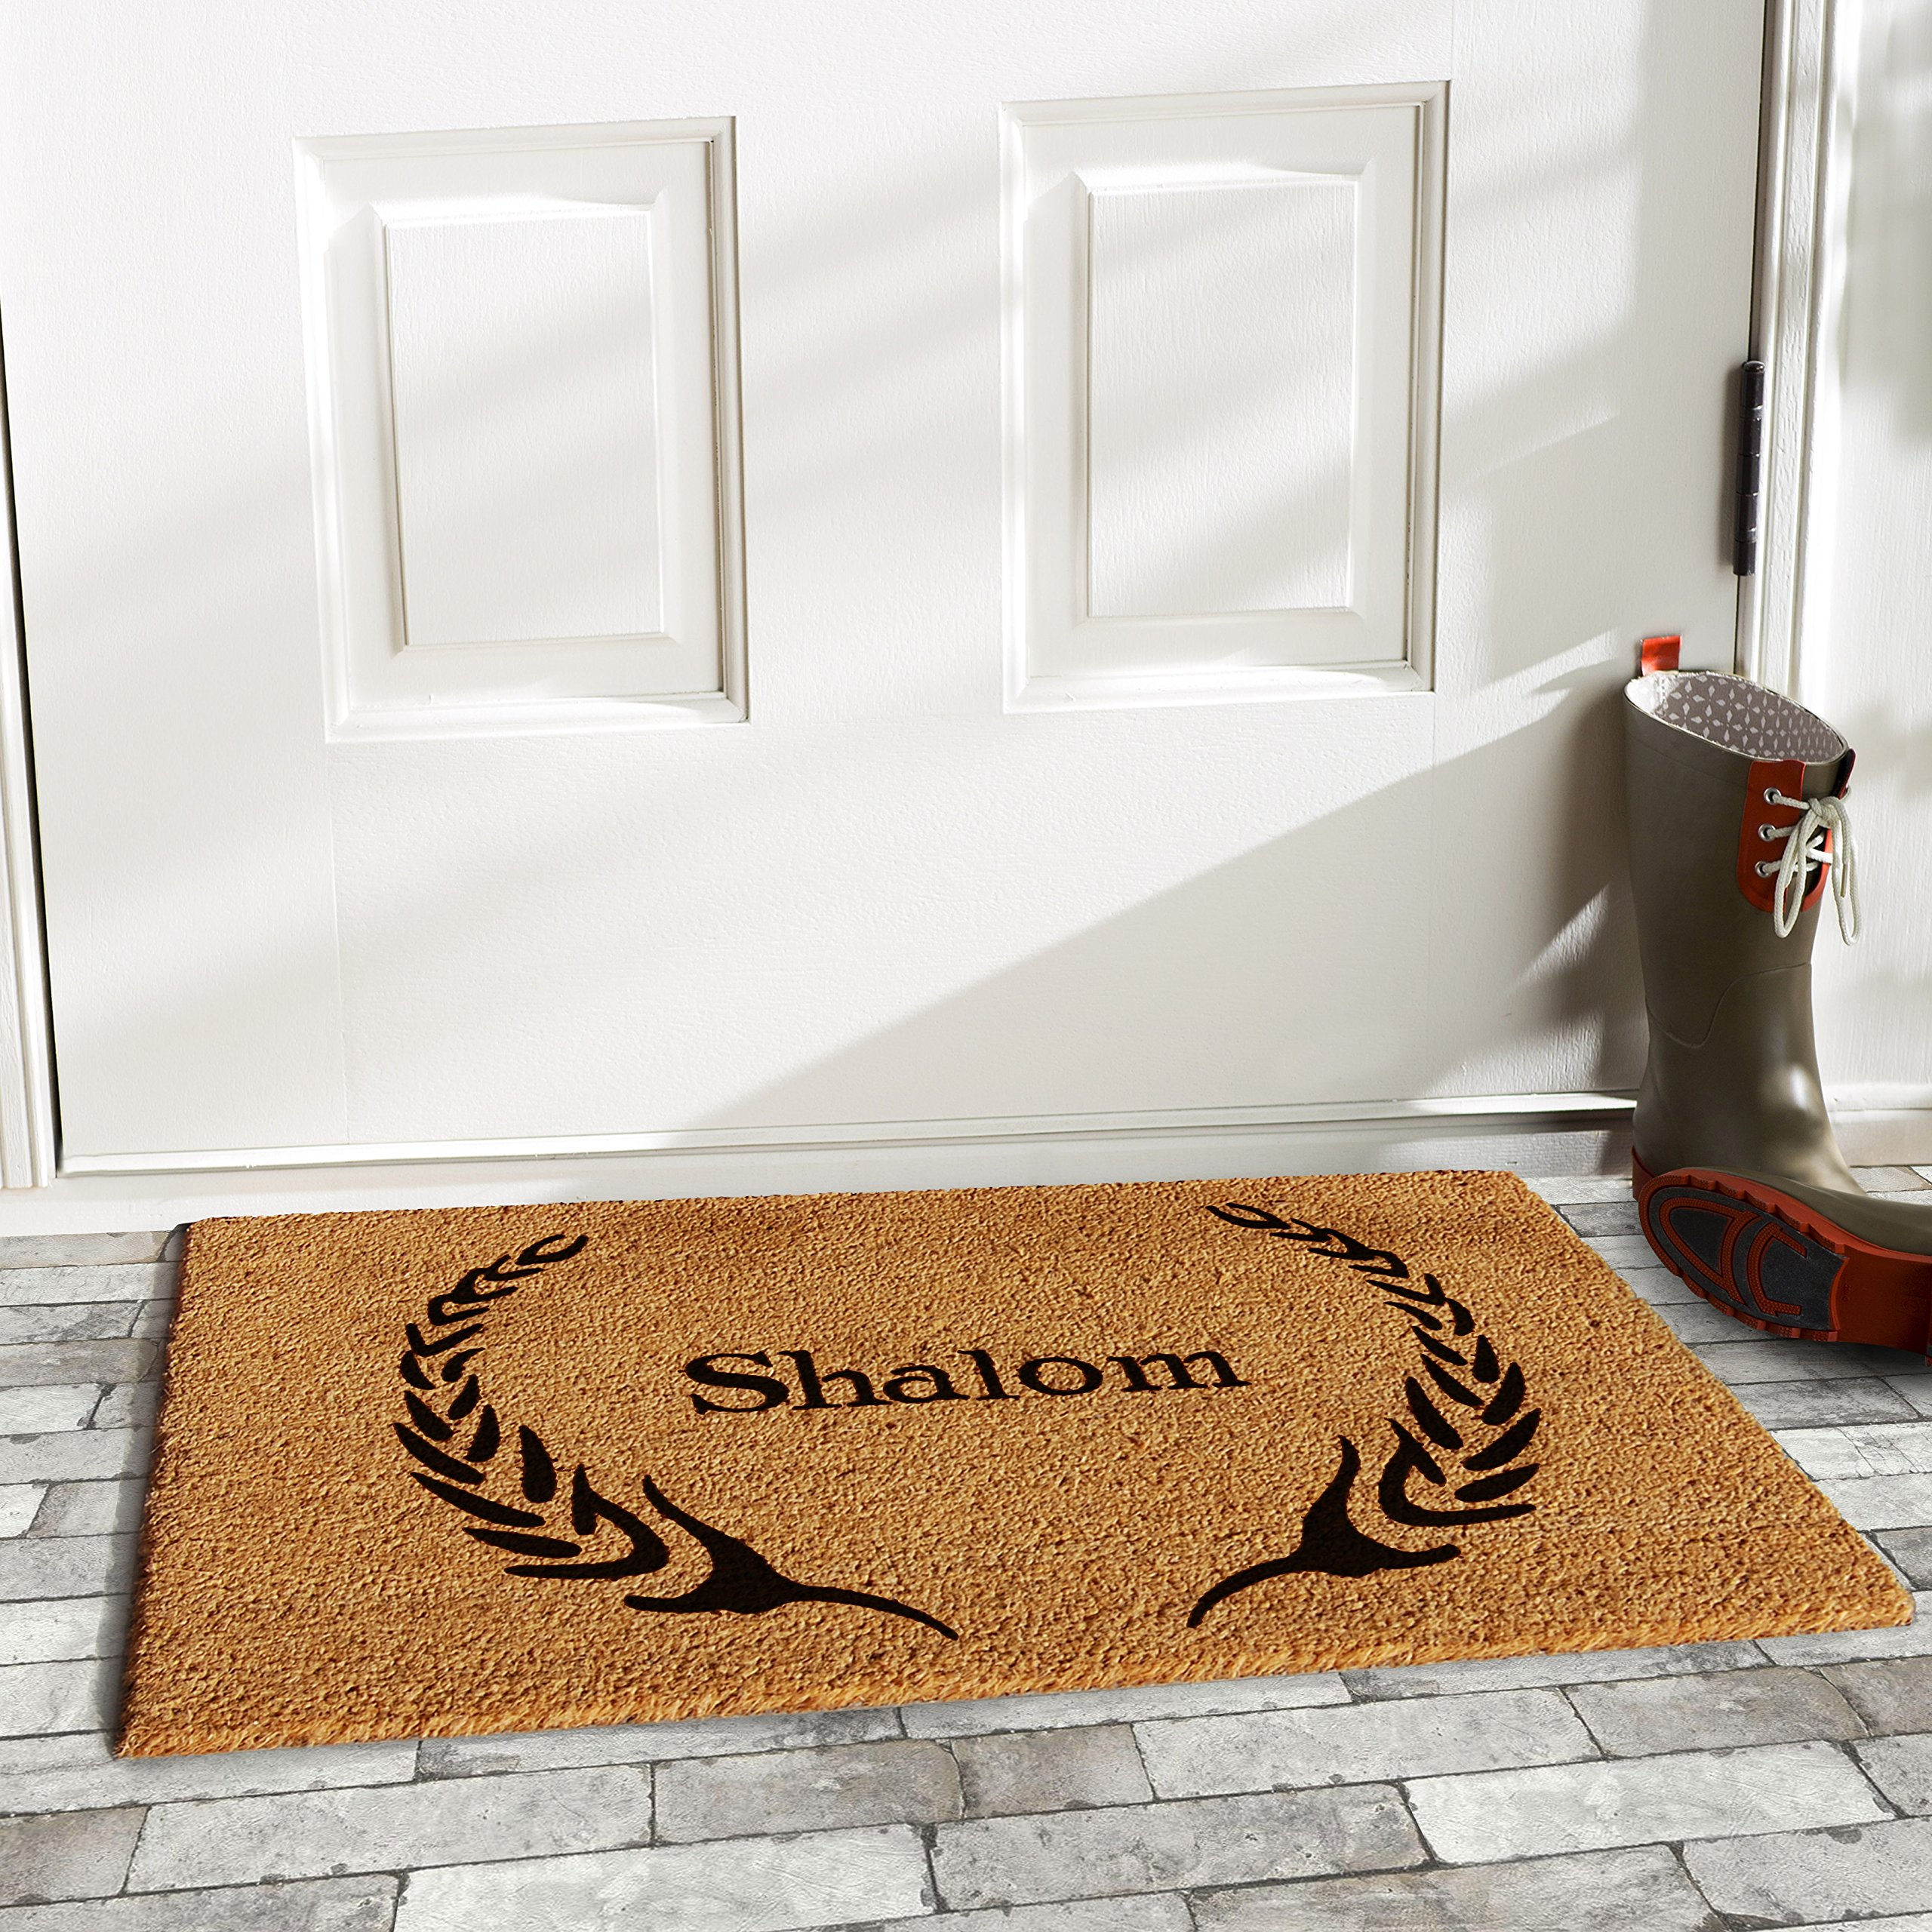 Home & More 120841729 Shalom Doormat, 17'' x 29'' x 0.60'', Natural/Black